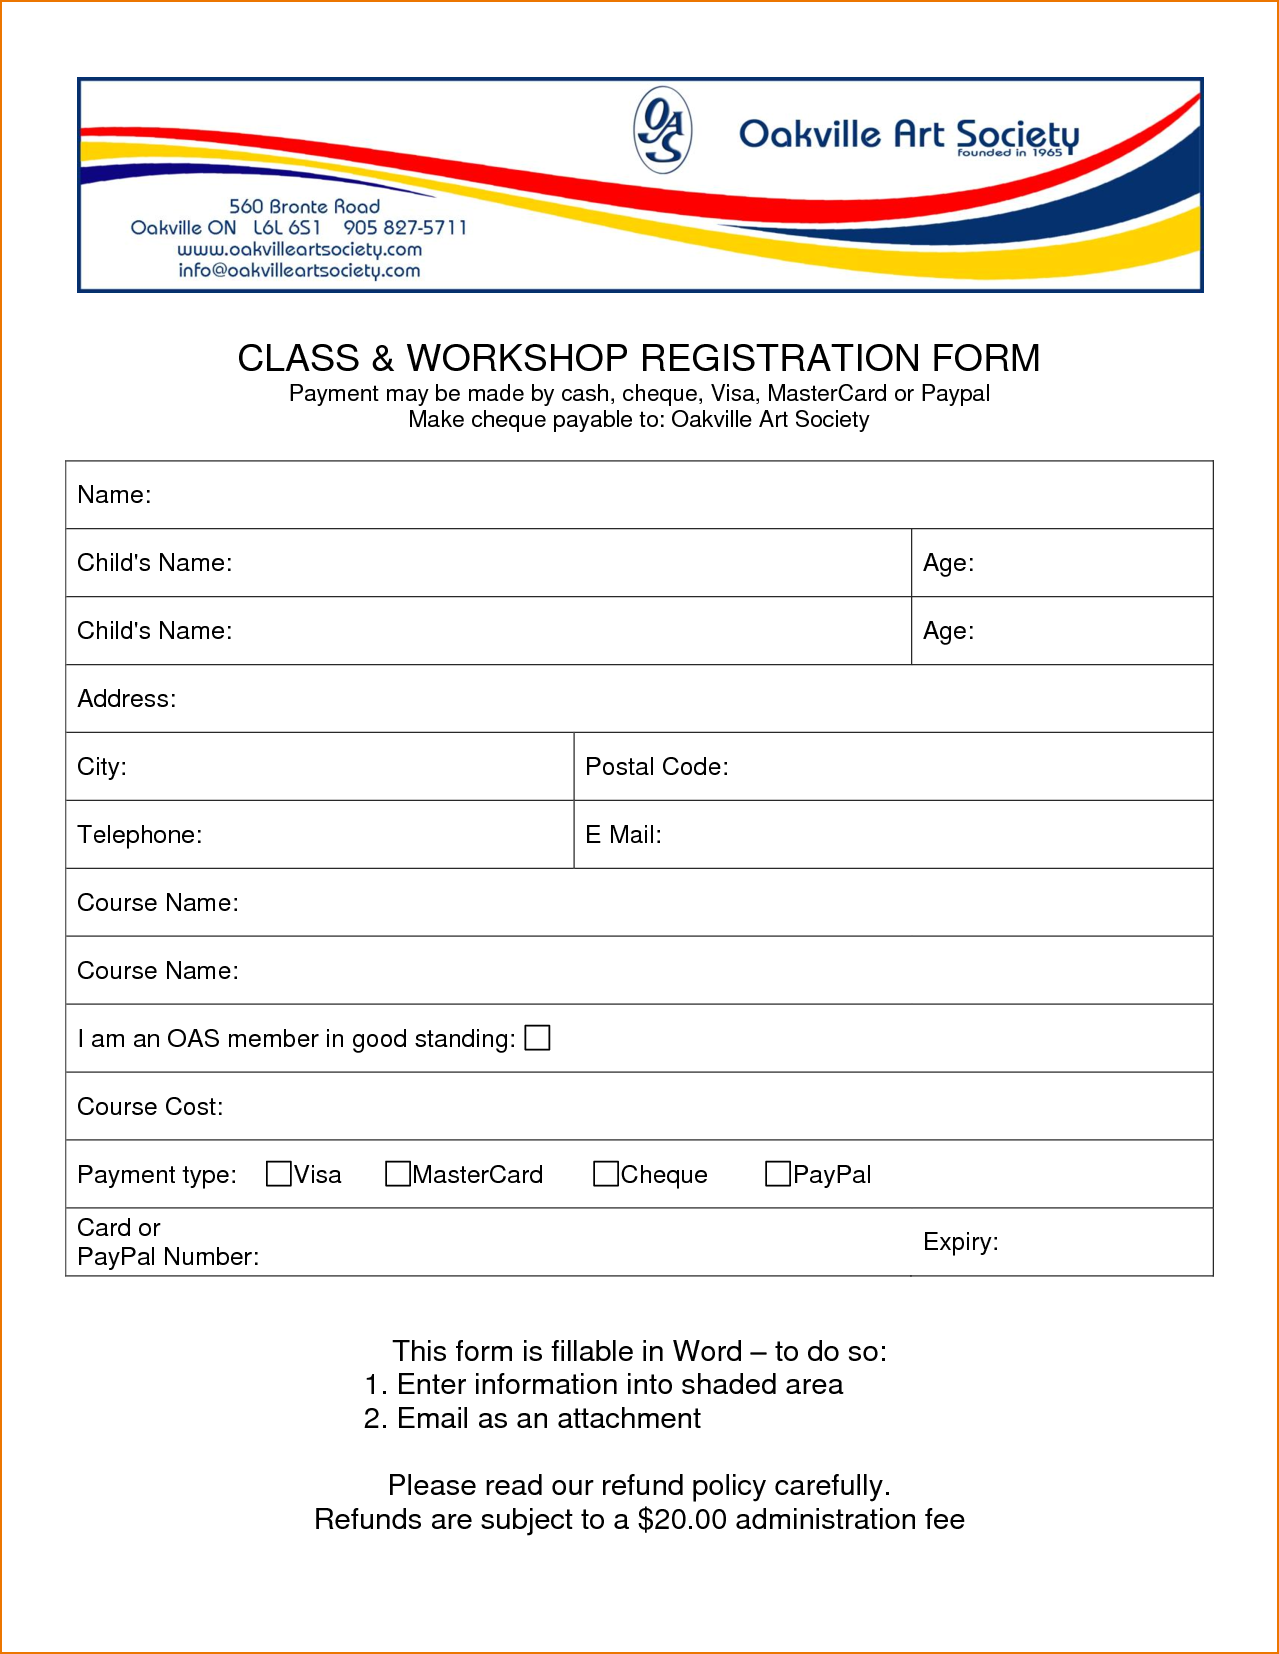 registration form word template   Boat.jeremyeaton.co